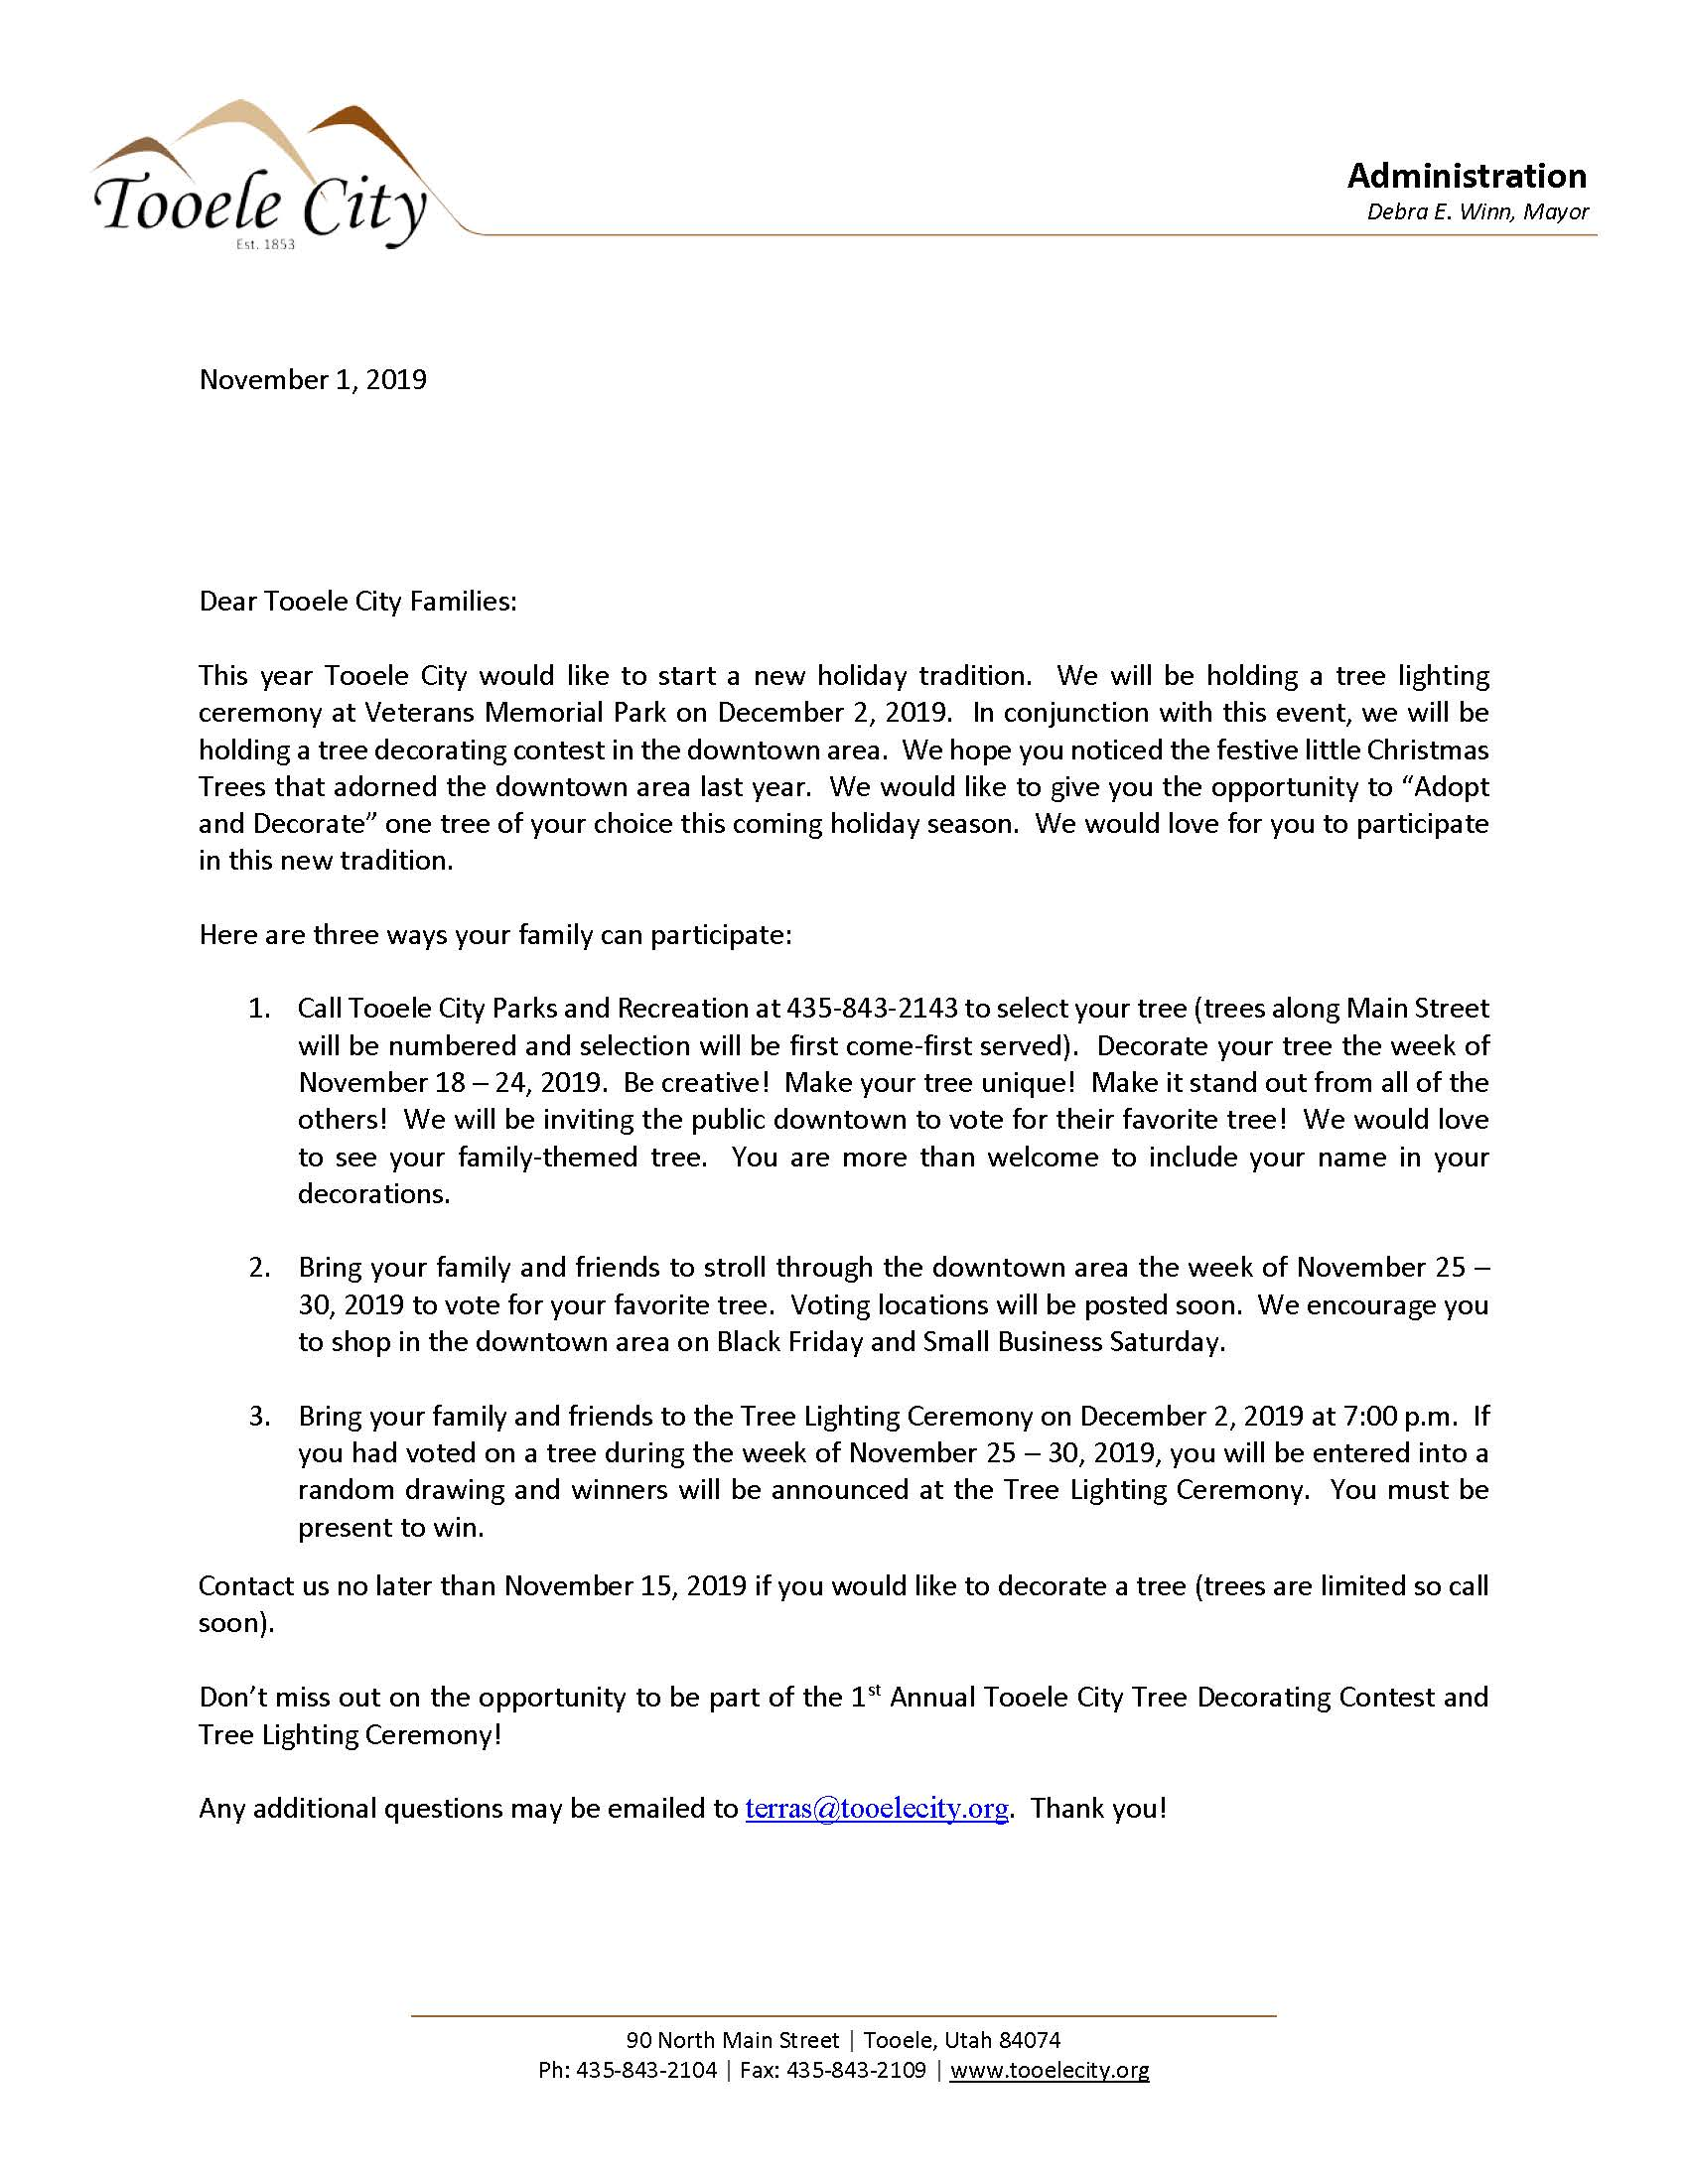 Downtown Tree Decorating Contest - Family Letter 2019